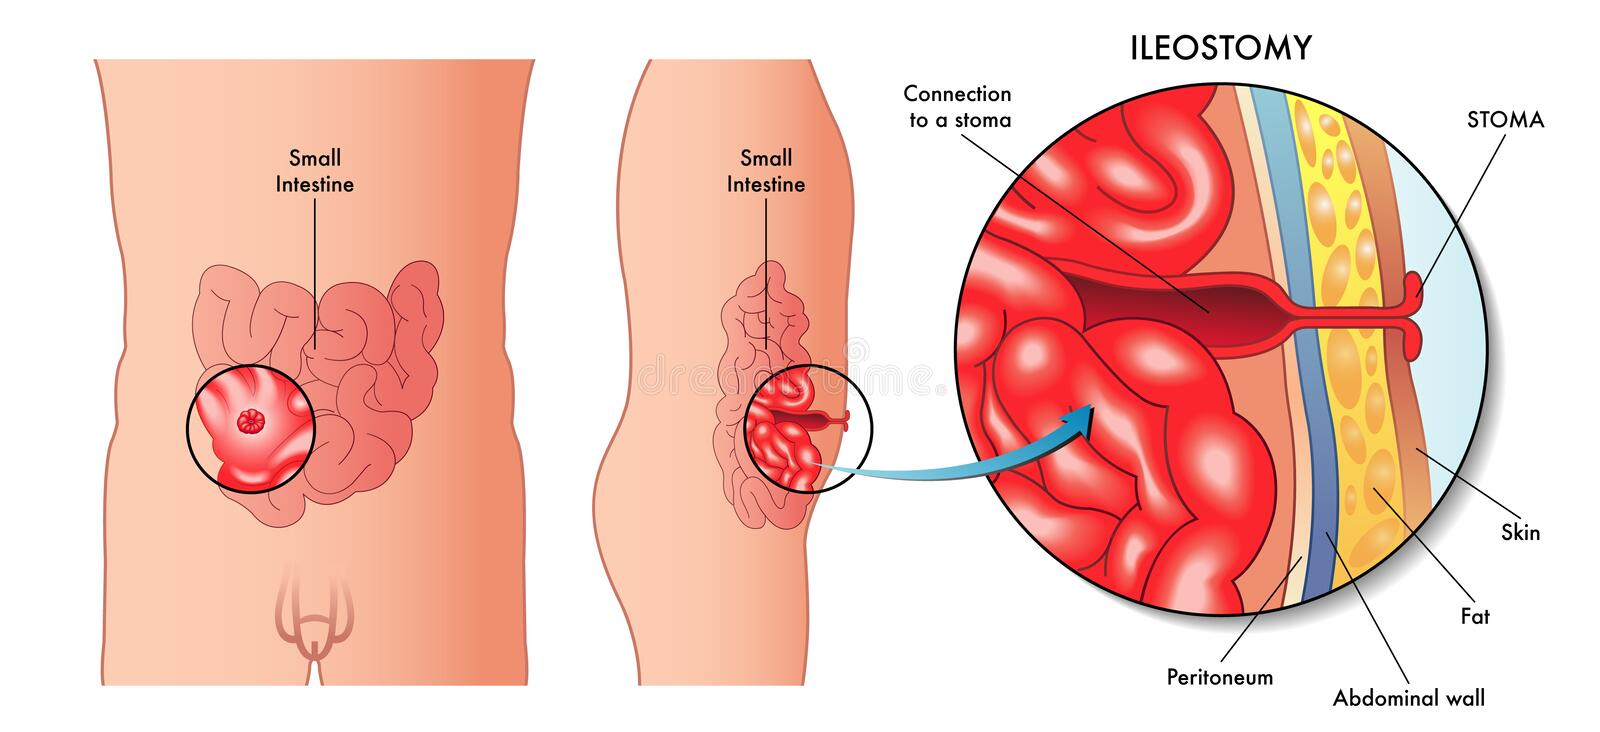 Ileostomy vektor illustrationer